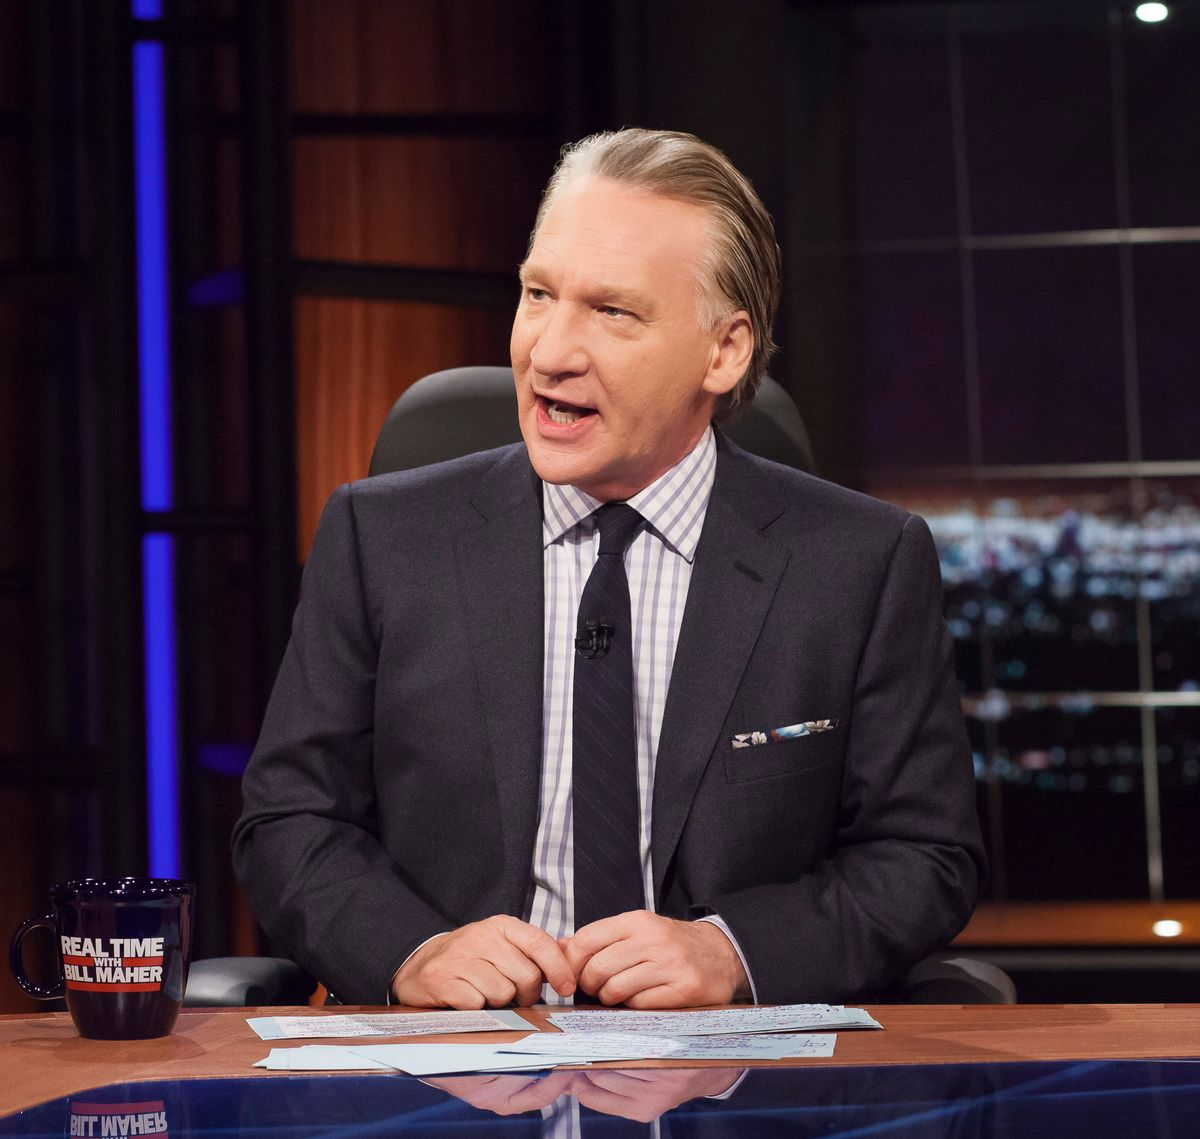 """This April 8, 2016 photo released by HBO shows Bill Maher, host of """"Real Time with Bill Maher,"""" during a broadcast of the show in Los Angeles. Since premiering 13 years ago, Maher has provided an essential forum for smart discussion about politics and culture, with his opening monologue often the sharpest, best-crafted topical humor on television. (Janet Van Ham/HBO via AP) (AP)"""